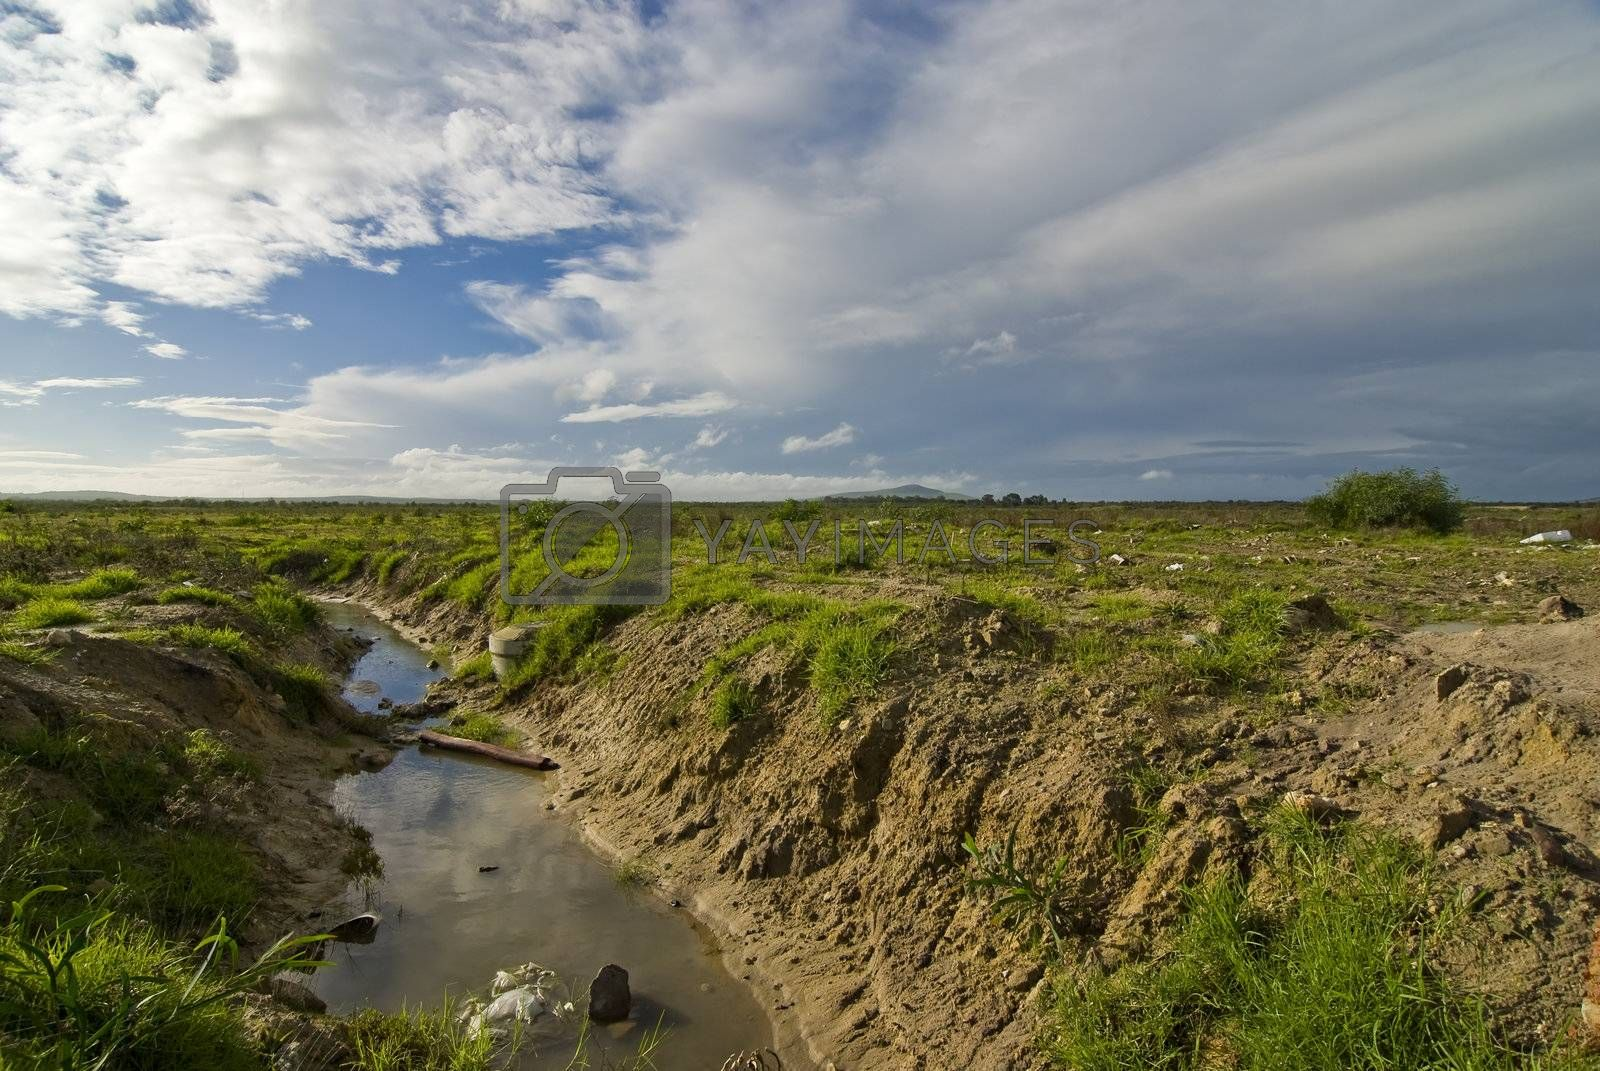 Polluted stream and landscape with patches of green and blue skies and white clouds overhead